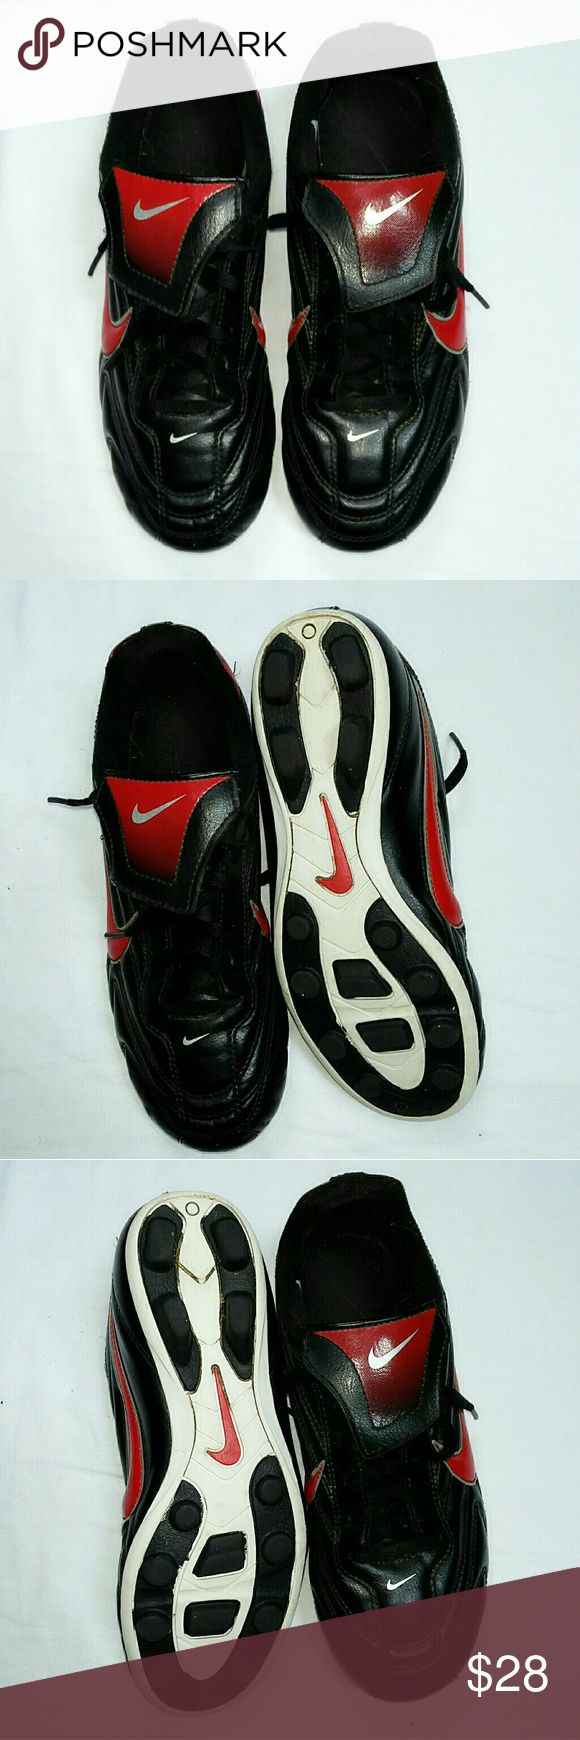 NIKE Cleats Shoes Size 4Y NIKE Cleats Shoes. Sz 4Y. Very good condition. Nike Shoes